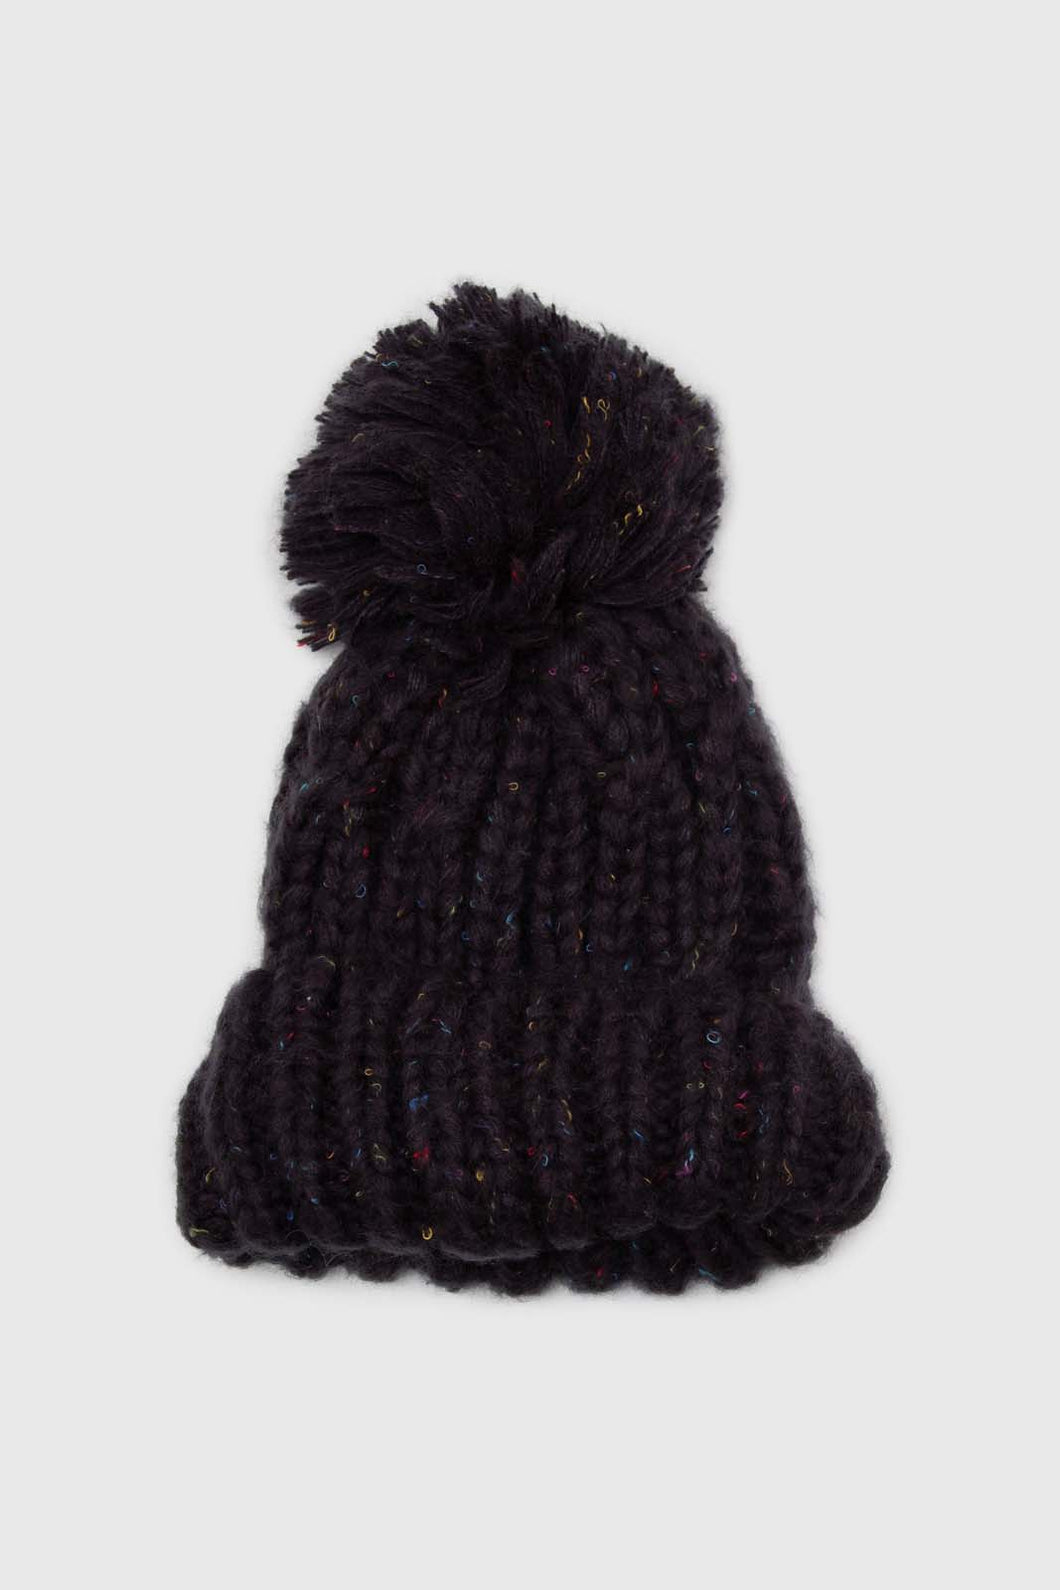 Charcoal rainbow knit pom pom hat1